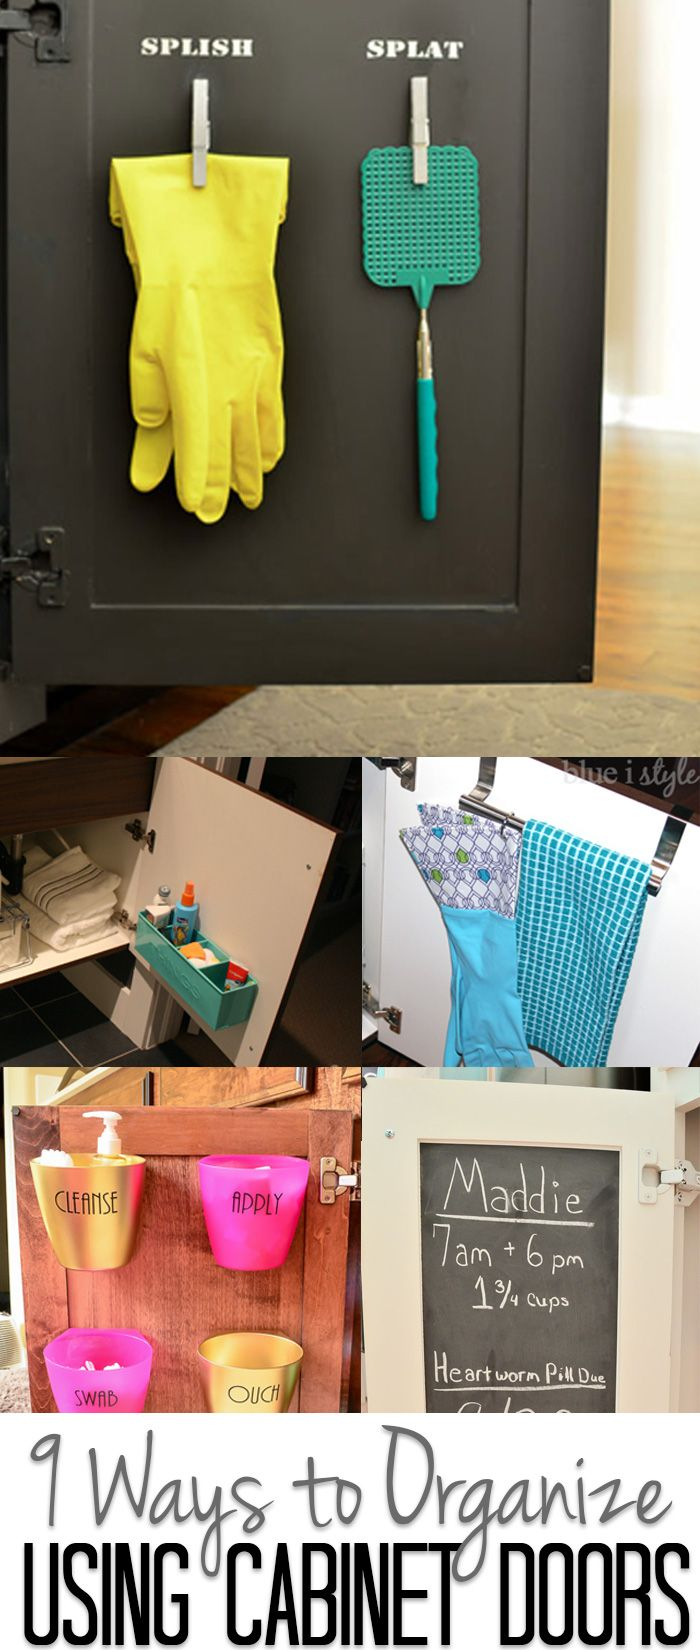 Don't overlook the backs of your cabinet doors when you need more organized storage space. Doors can be used to organize everything from spices to QTips in the kitchen and bathroom. They also make valuable message centers. Click to see all 9 creative ideas!